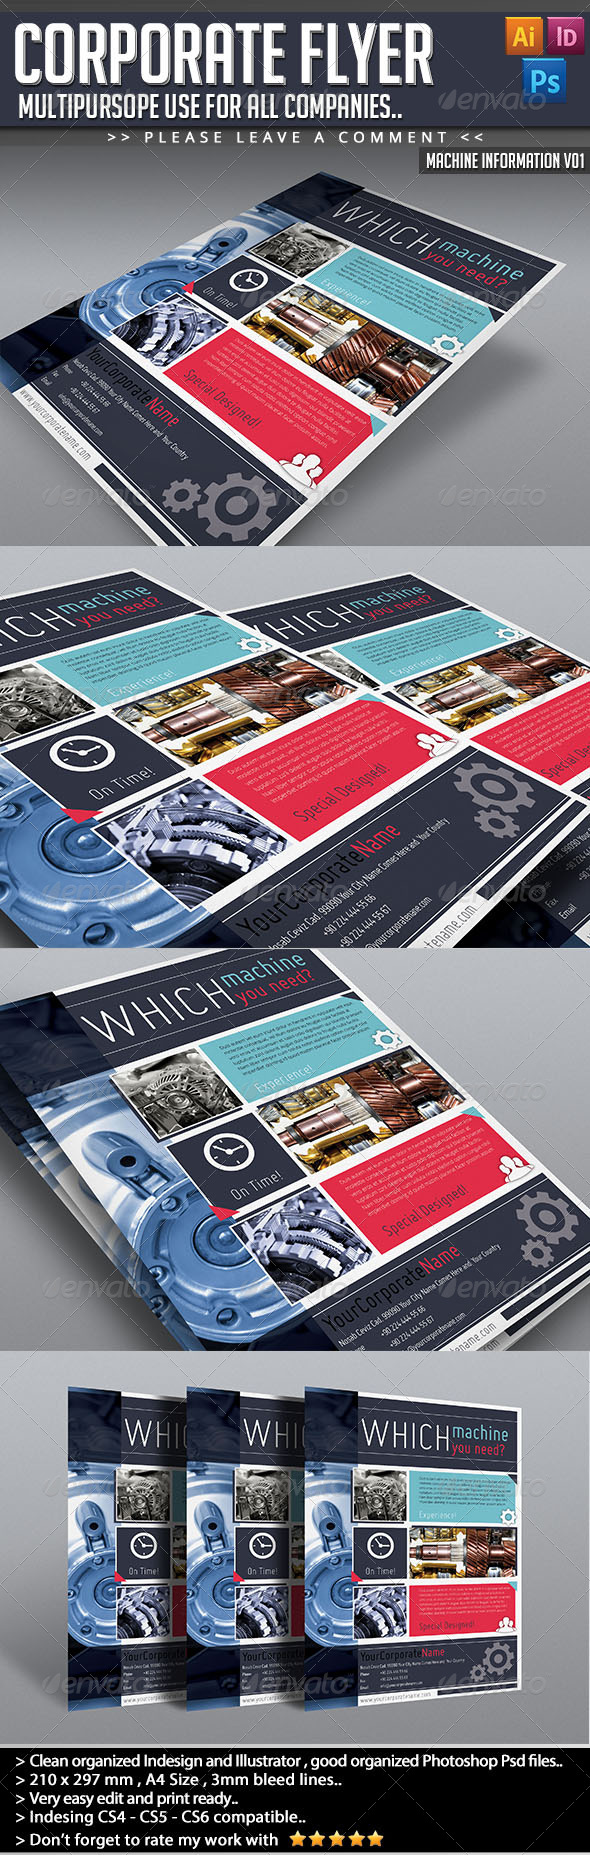 GraphicRiver Corporate Flyer Machine Informations V01 5078752